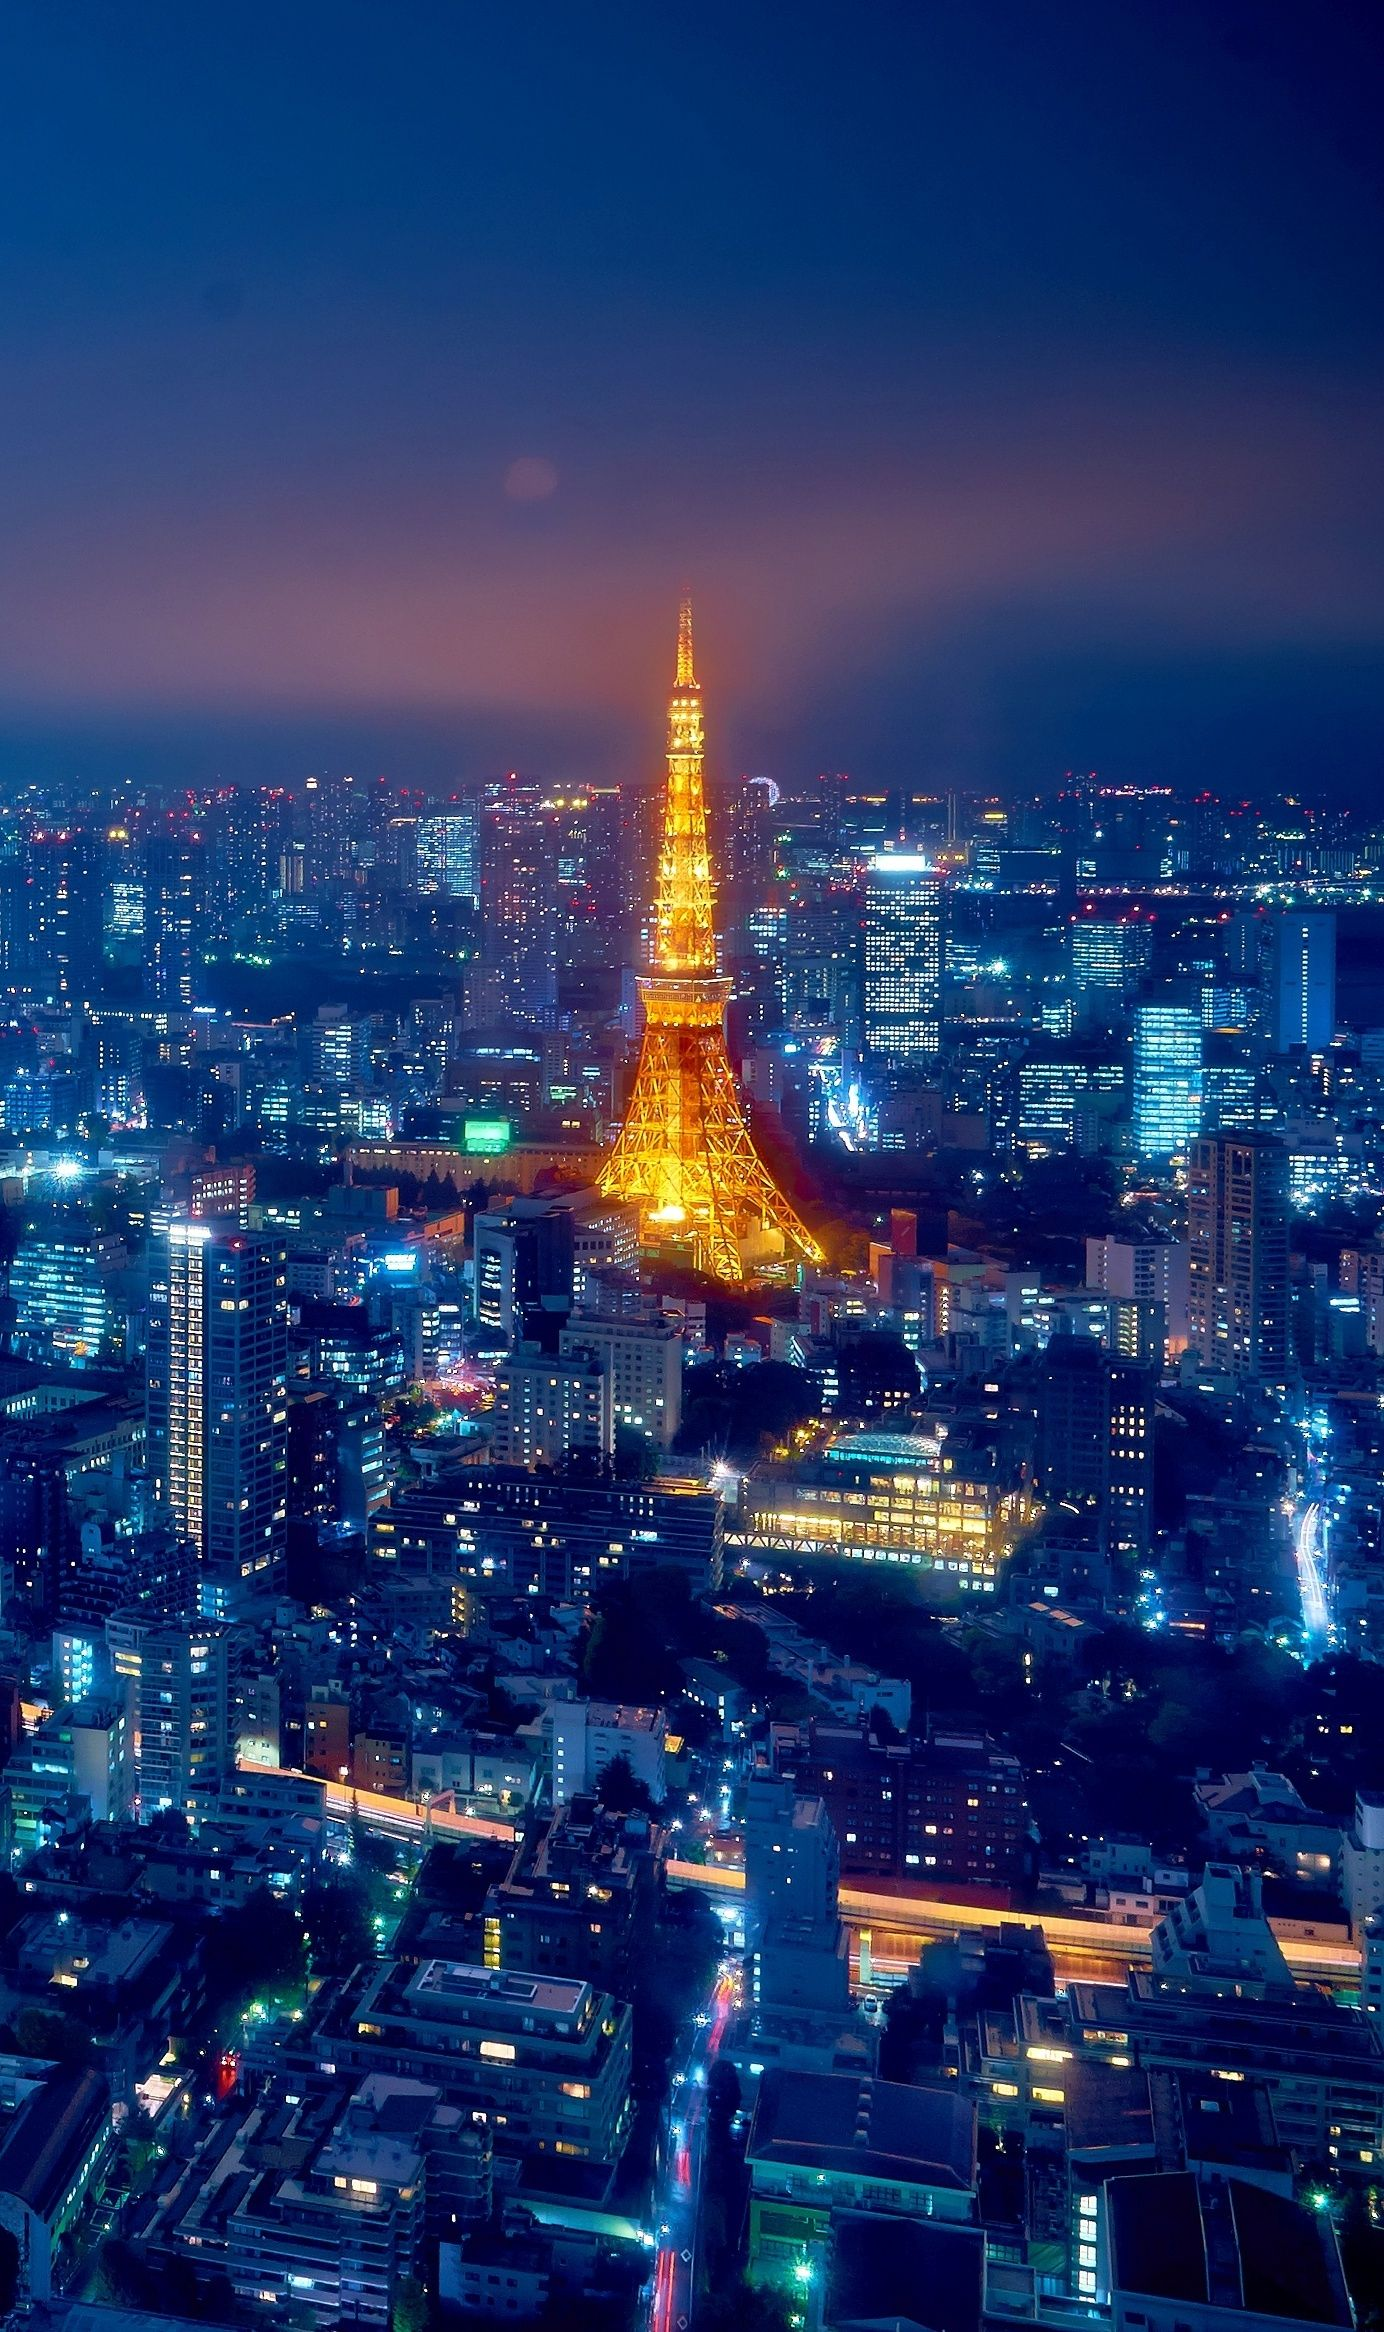 Night View Of Tokyo, Japan Cropped Photo By Moyan Brenn